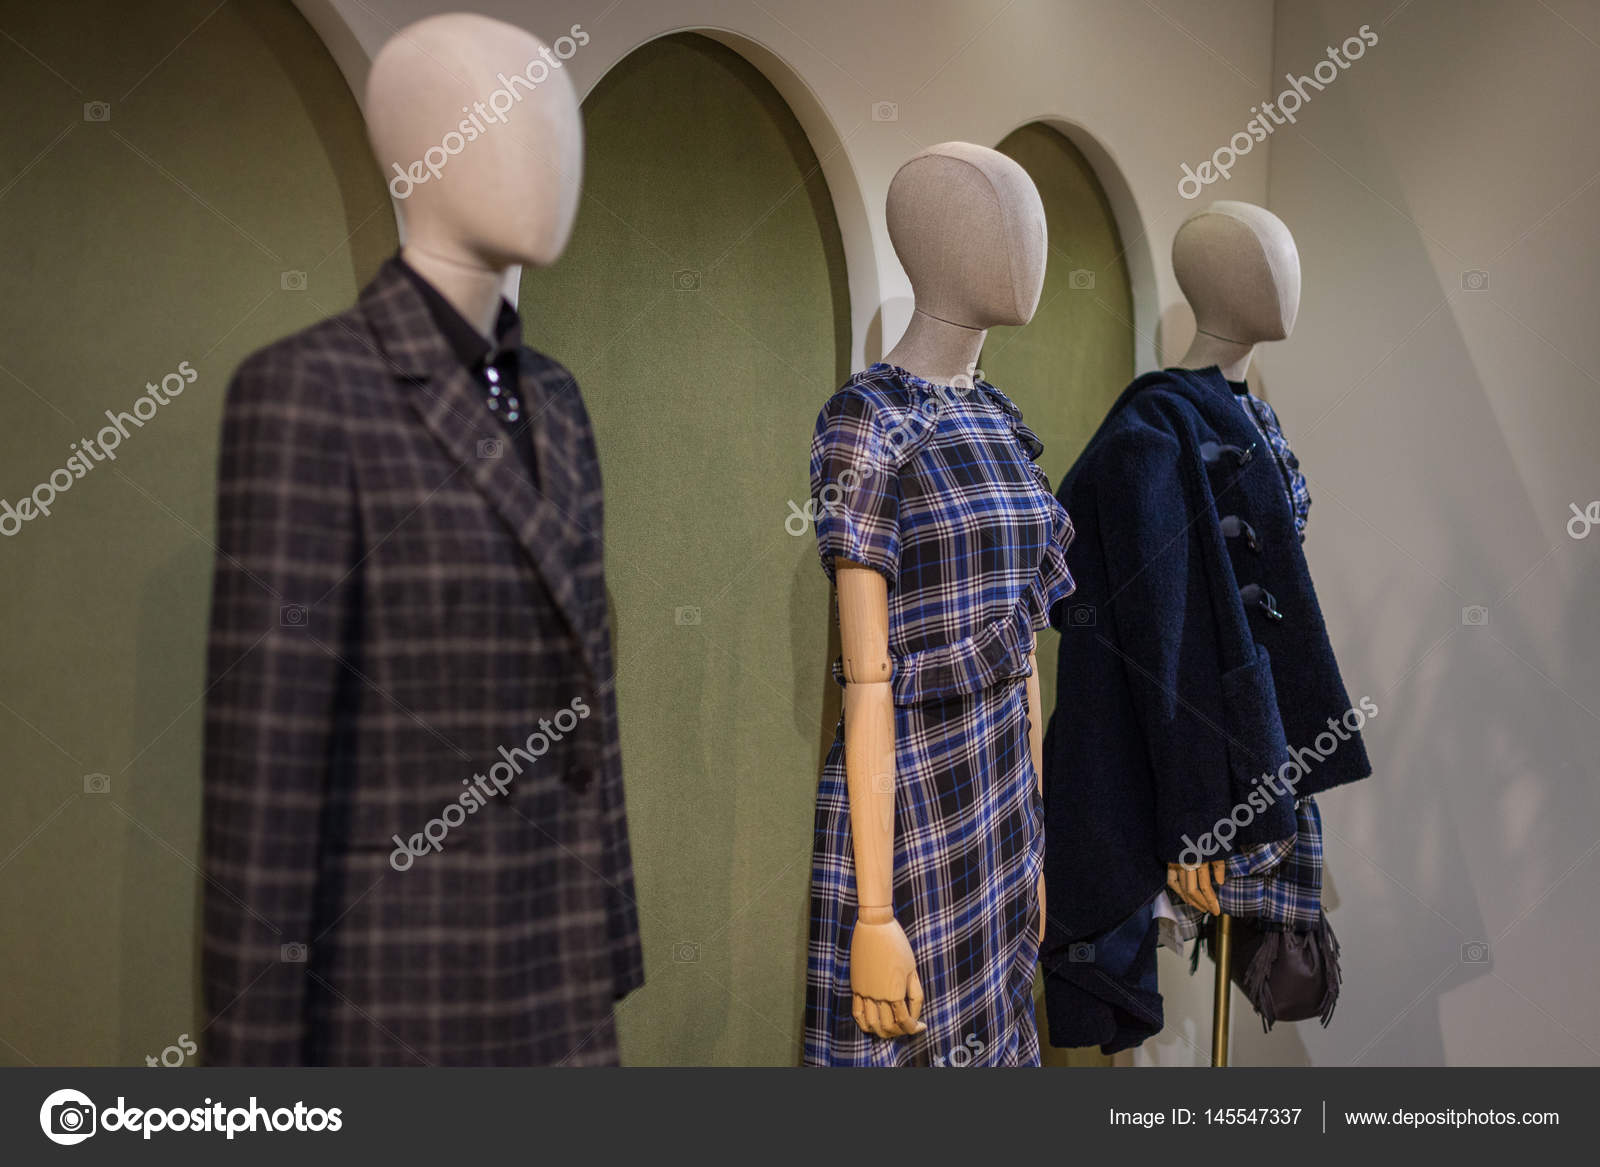 682b333a3 Fashion Presentation on MAJE in Patis – Stock Editorial Photo ...